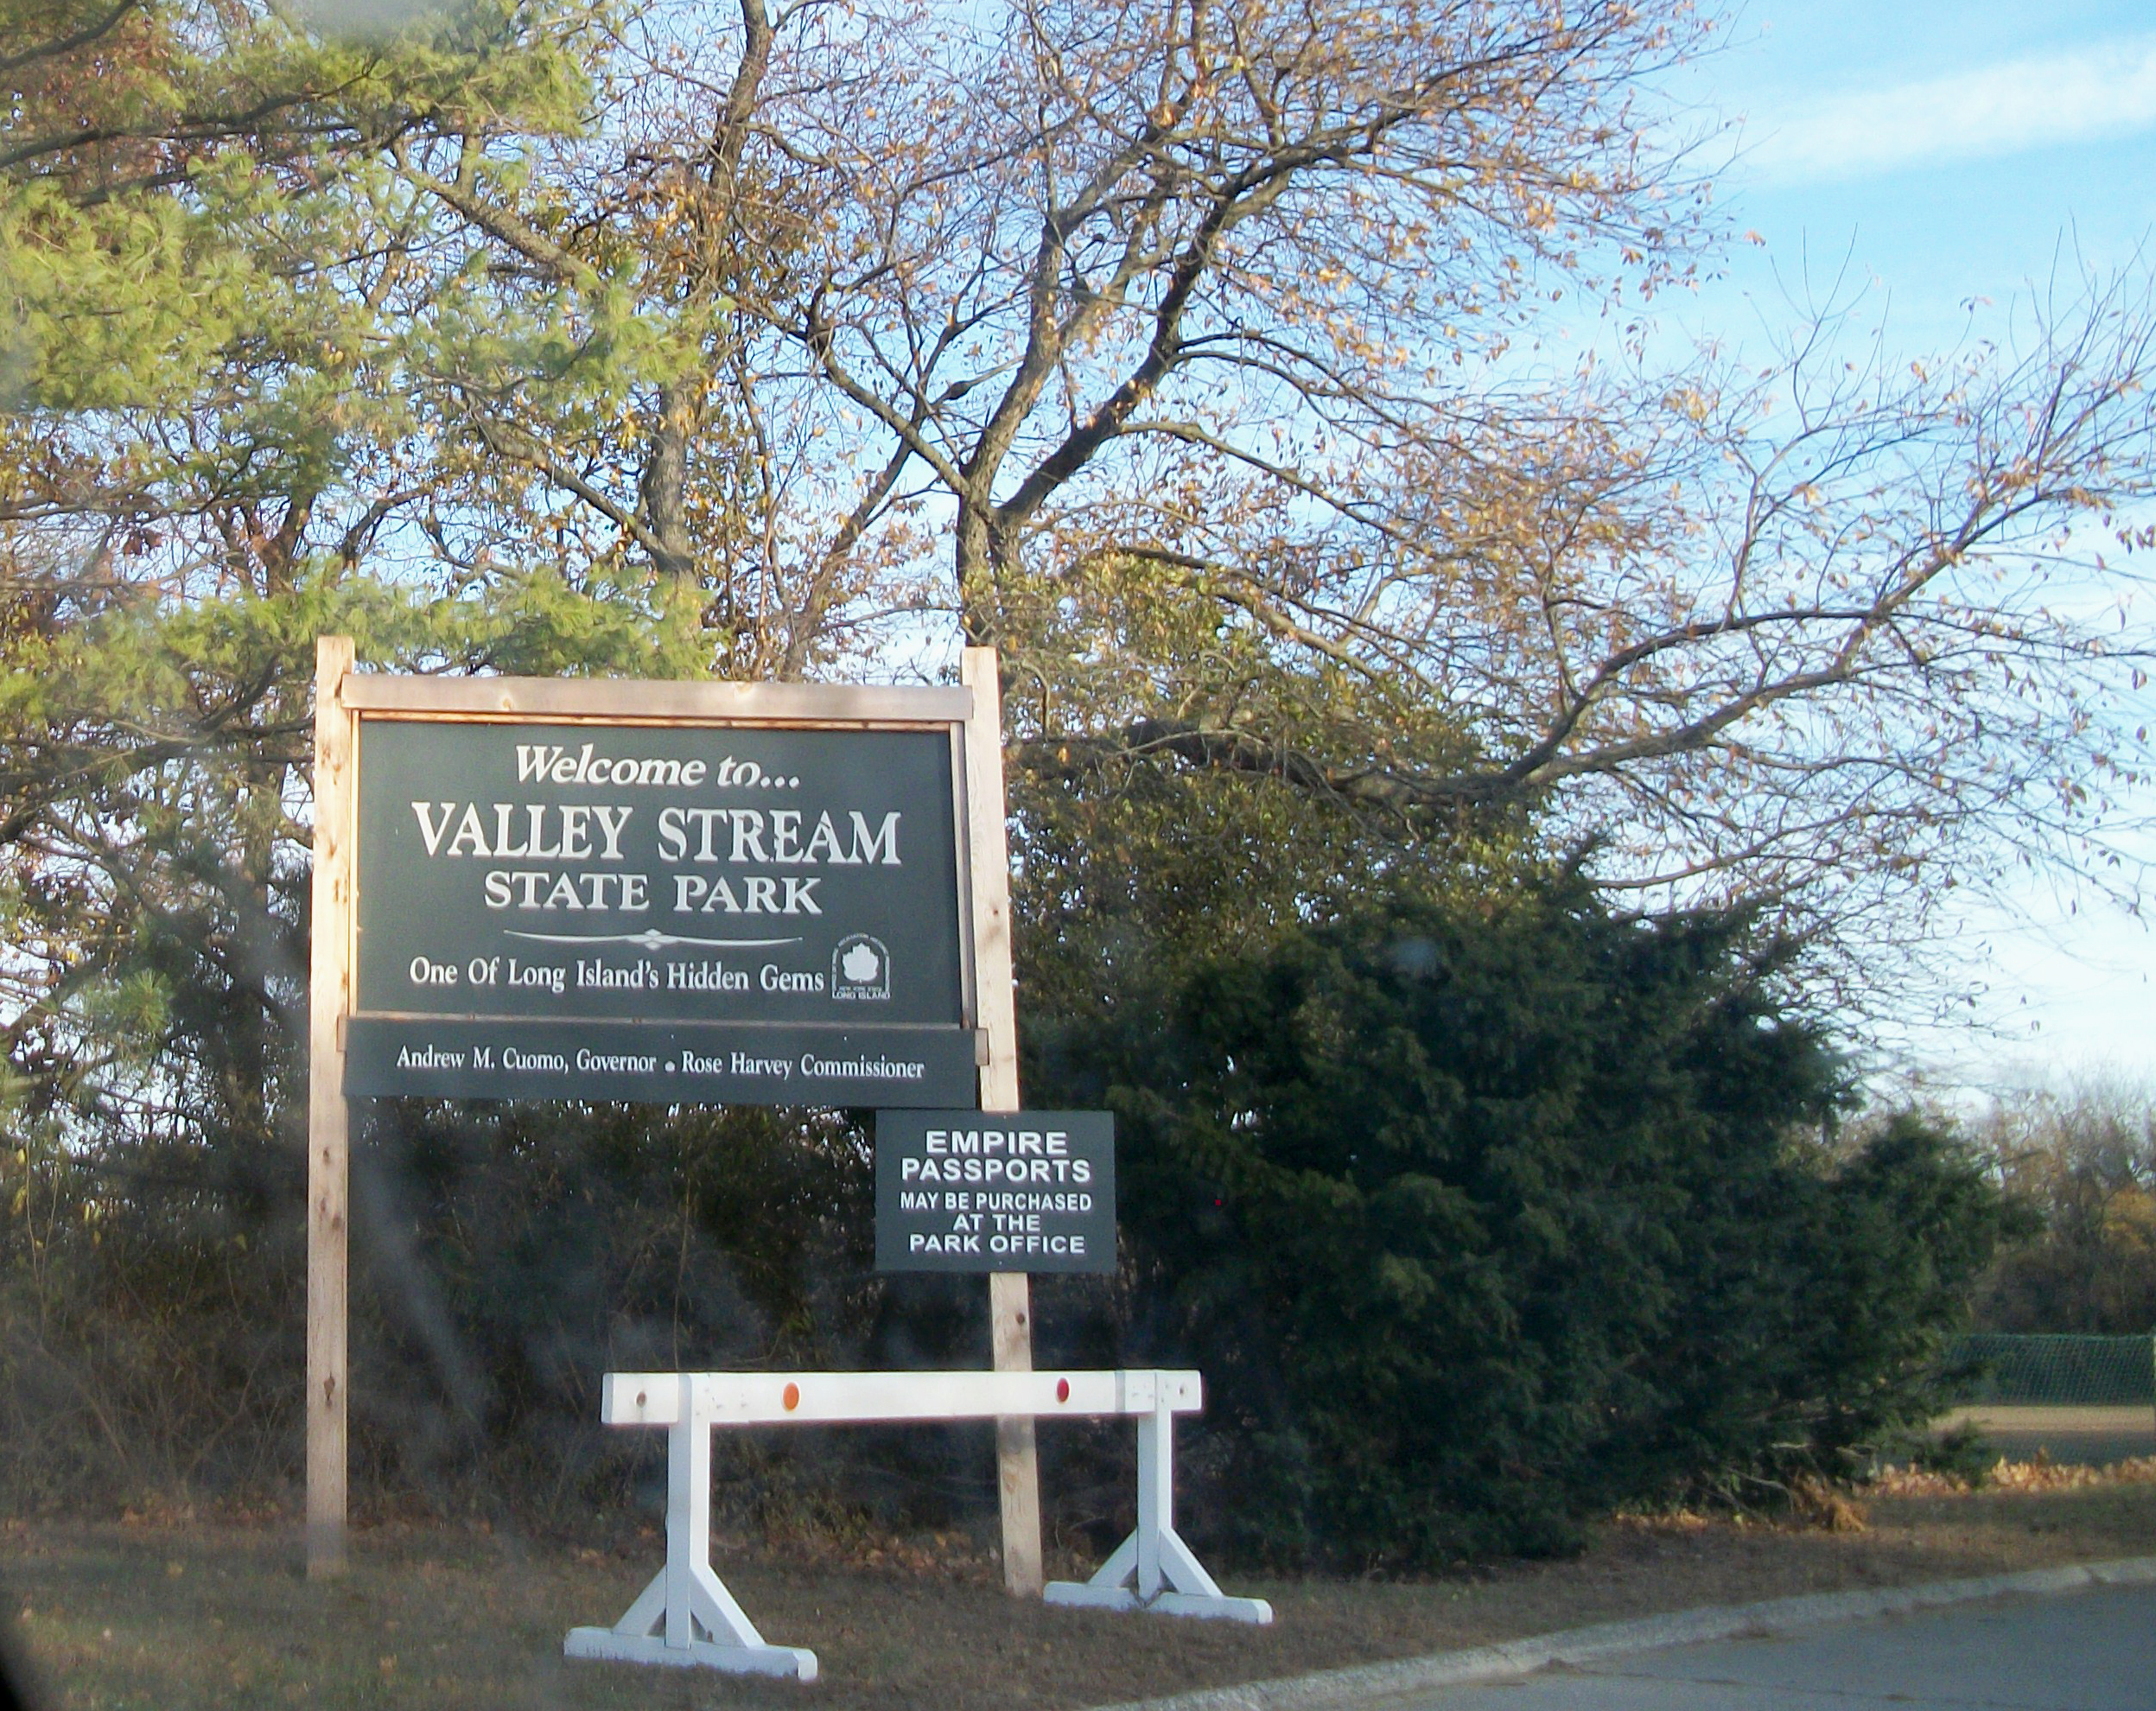 Valley Stream State Park - Wikipedia